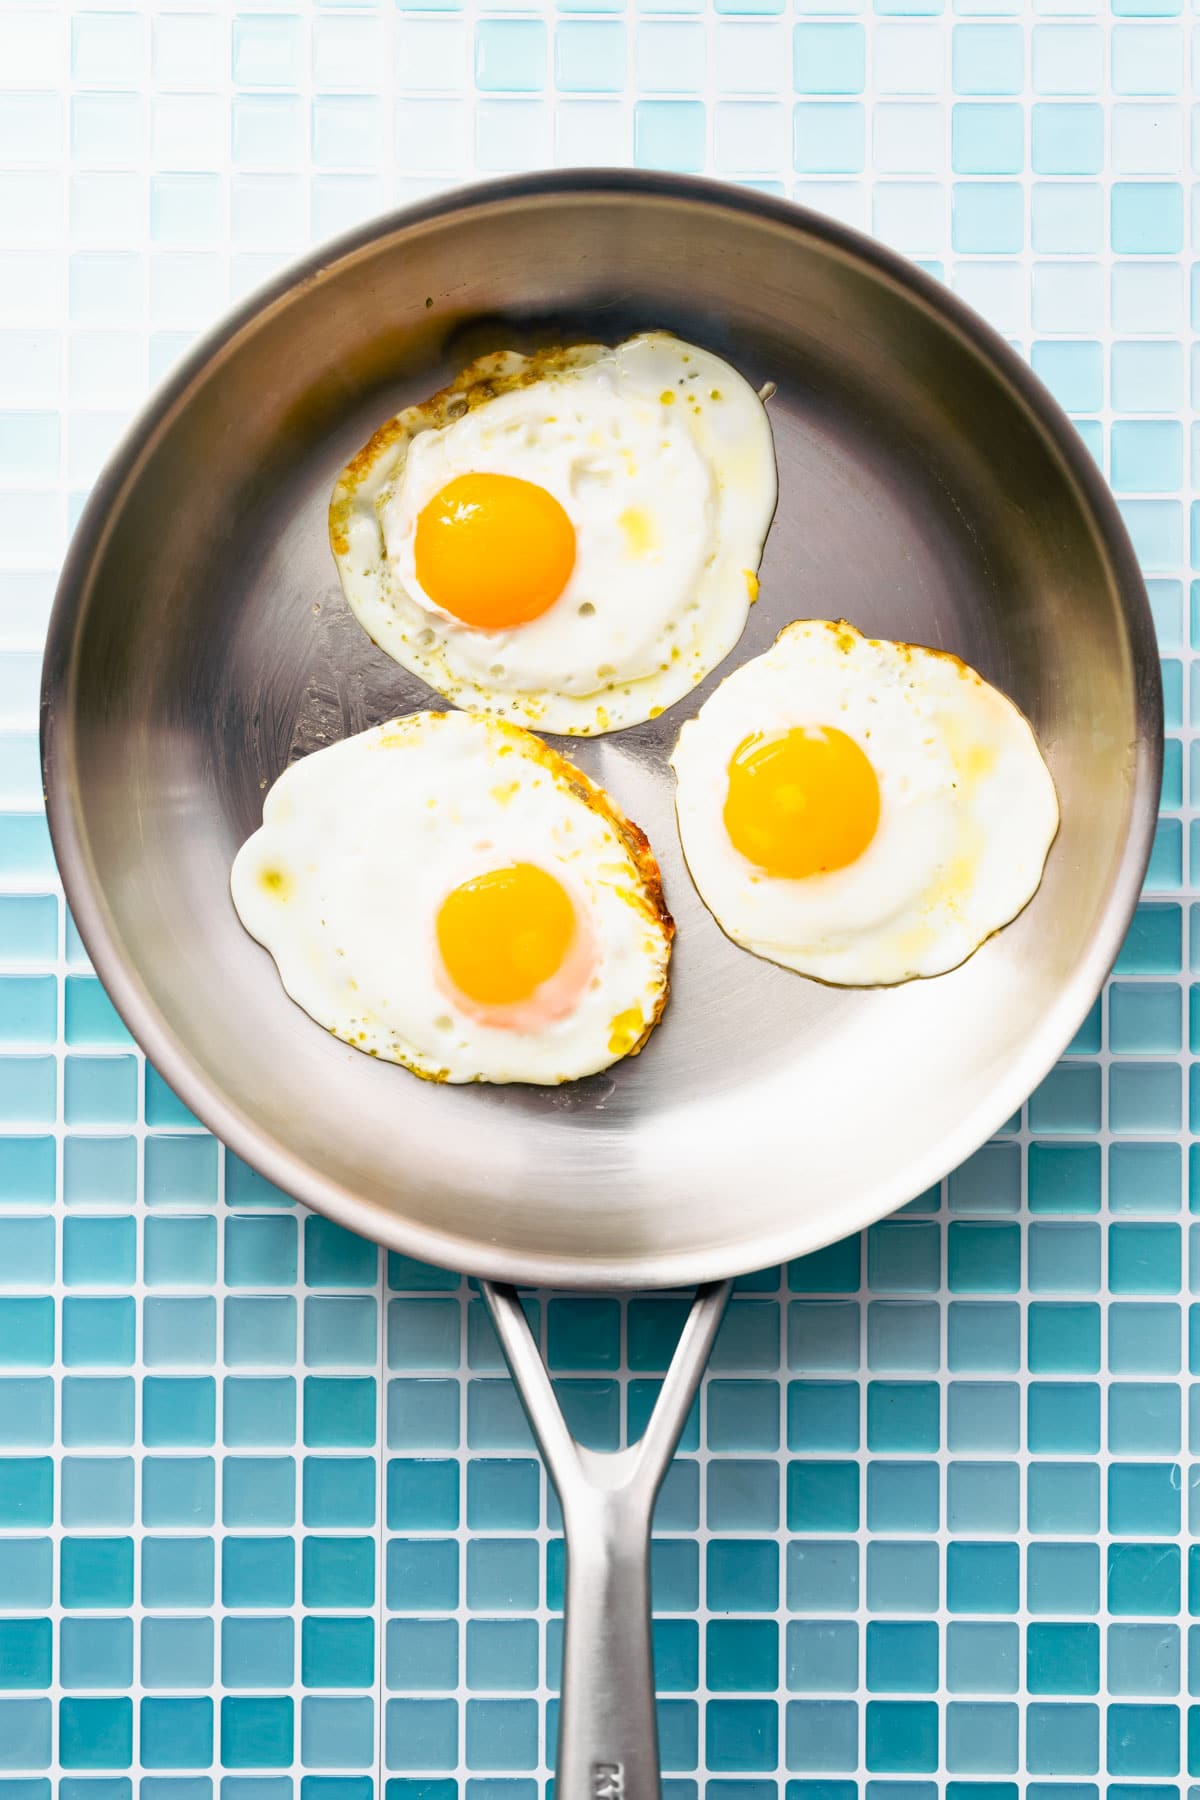 3 fried eggs in a skillet